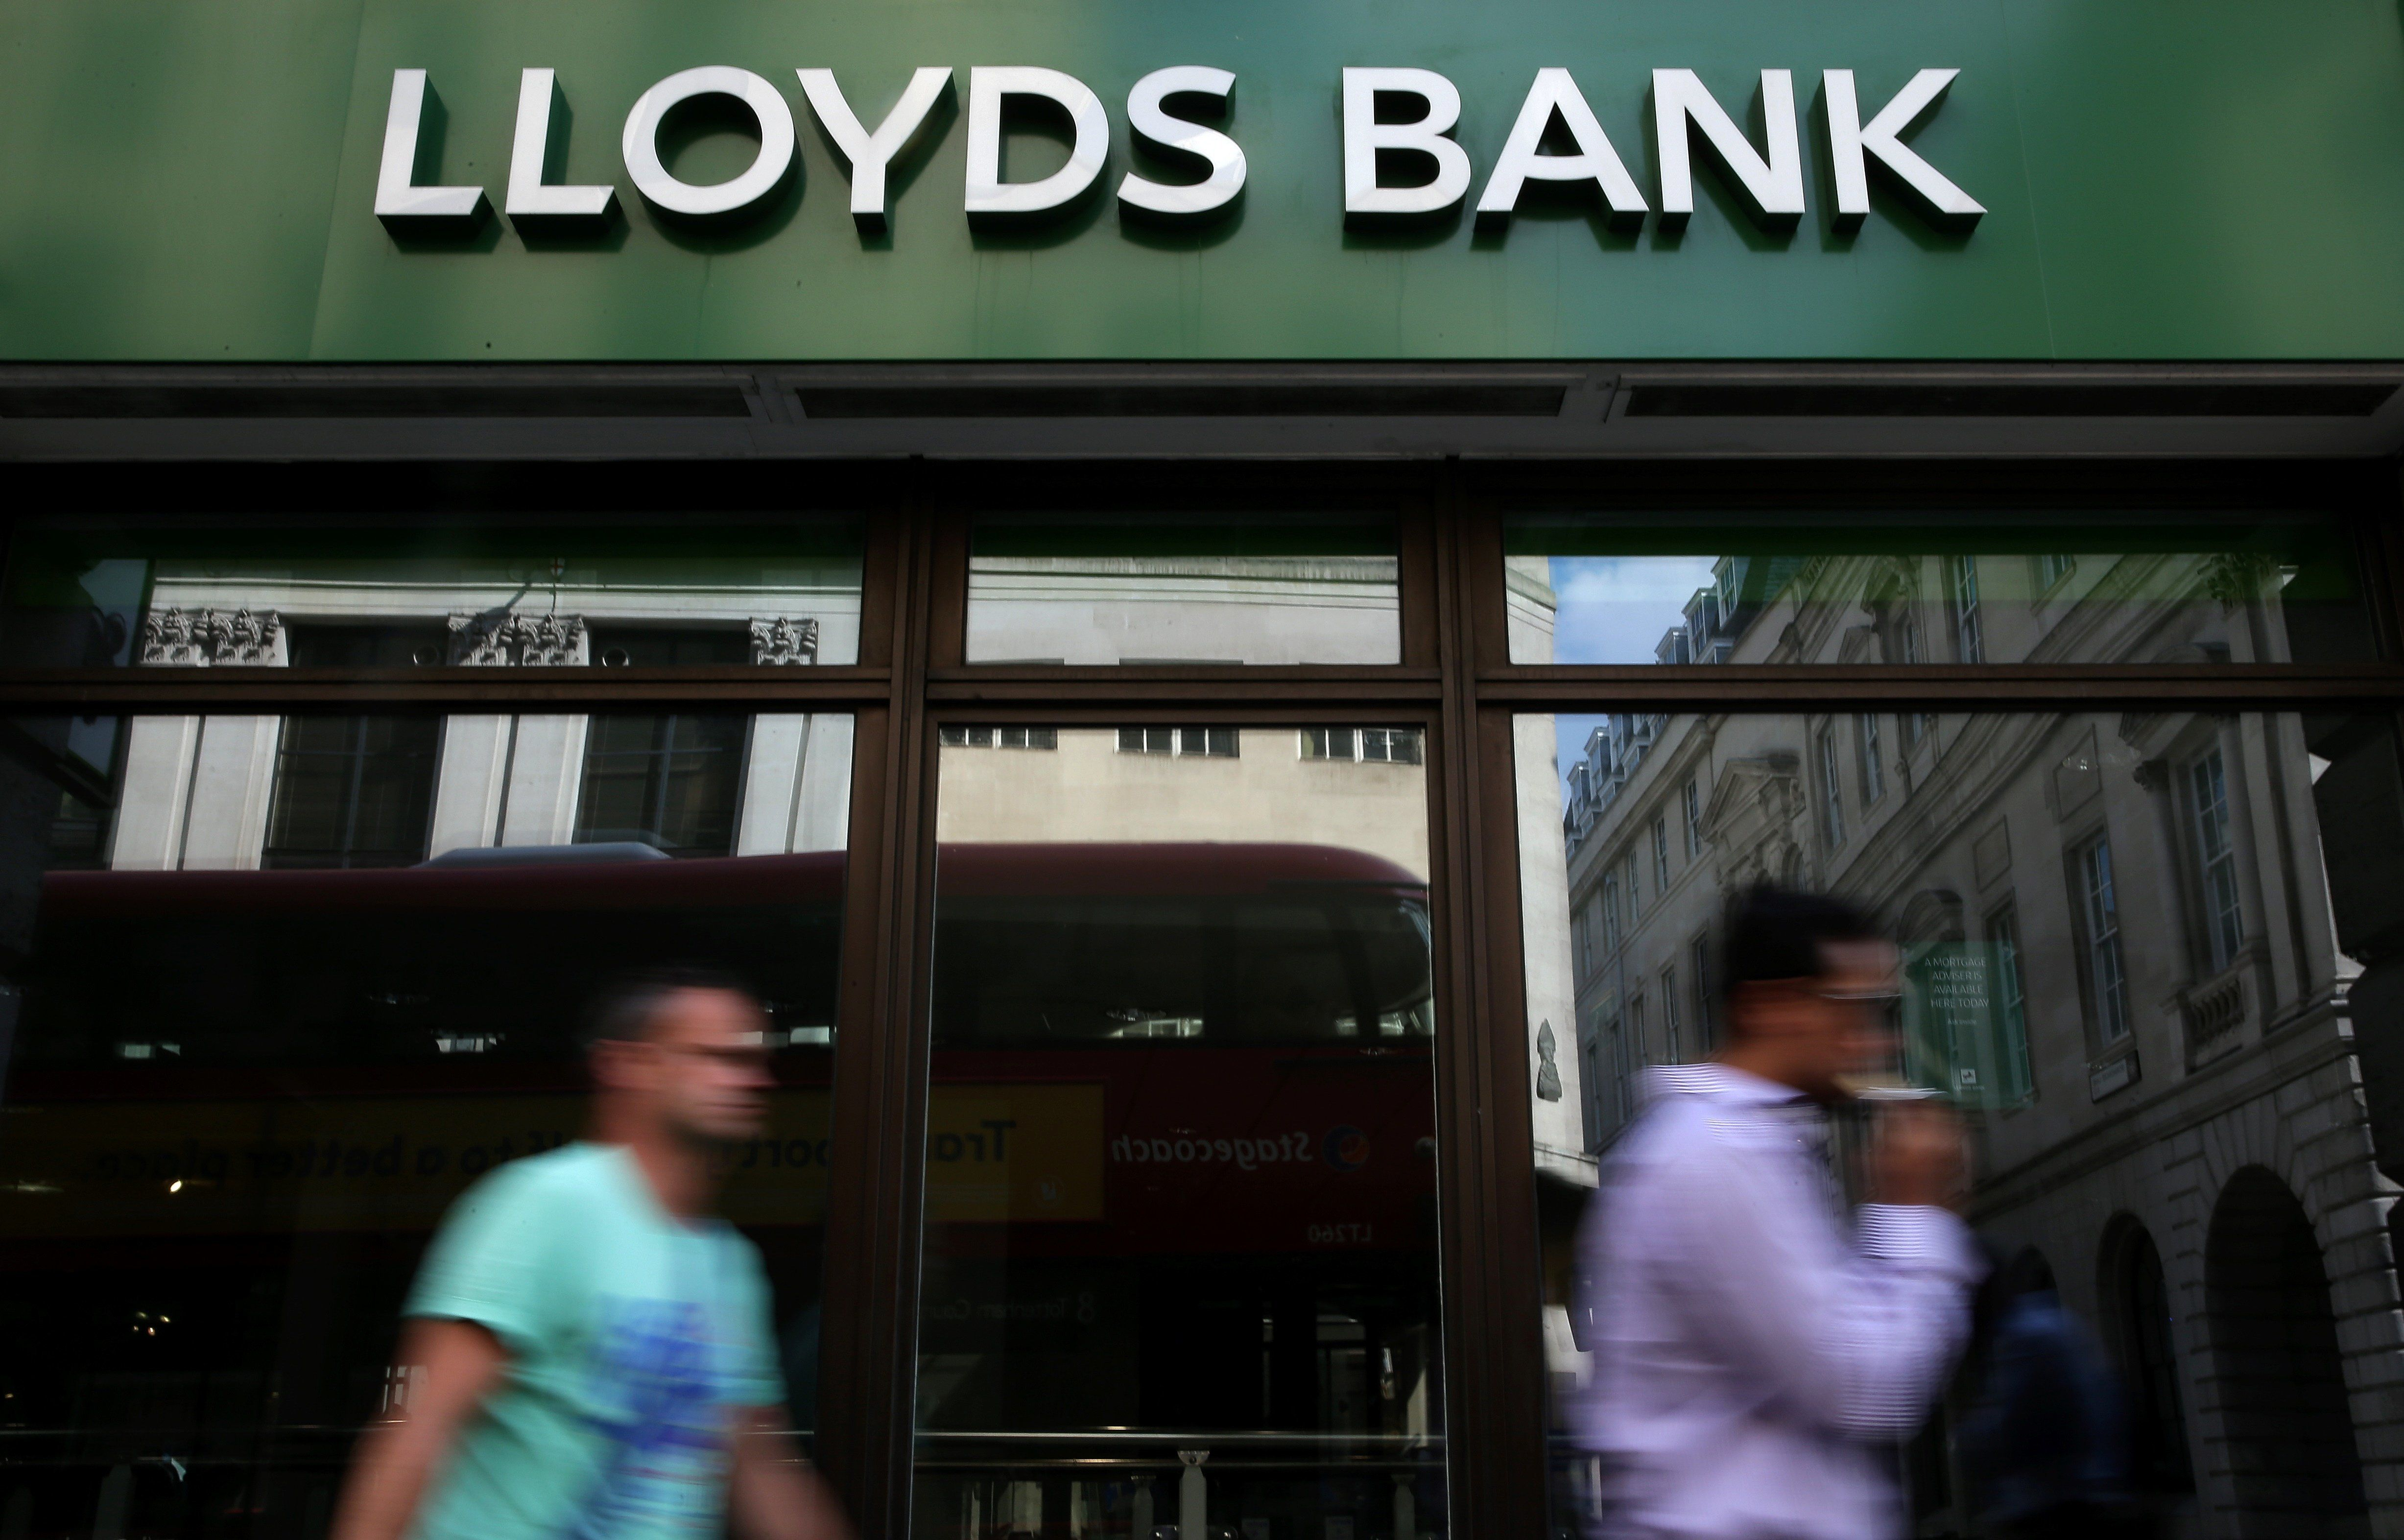 Lloyds Banking Group To Axe 6,200 Jobs As Part Of Digital